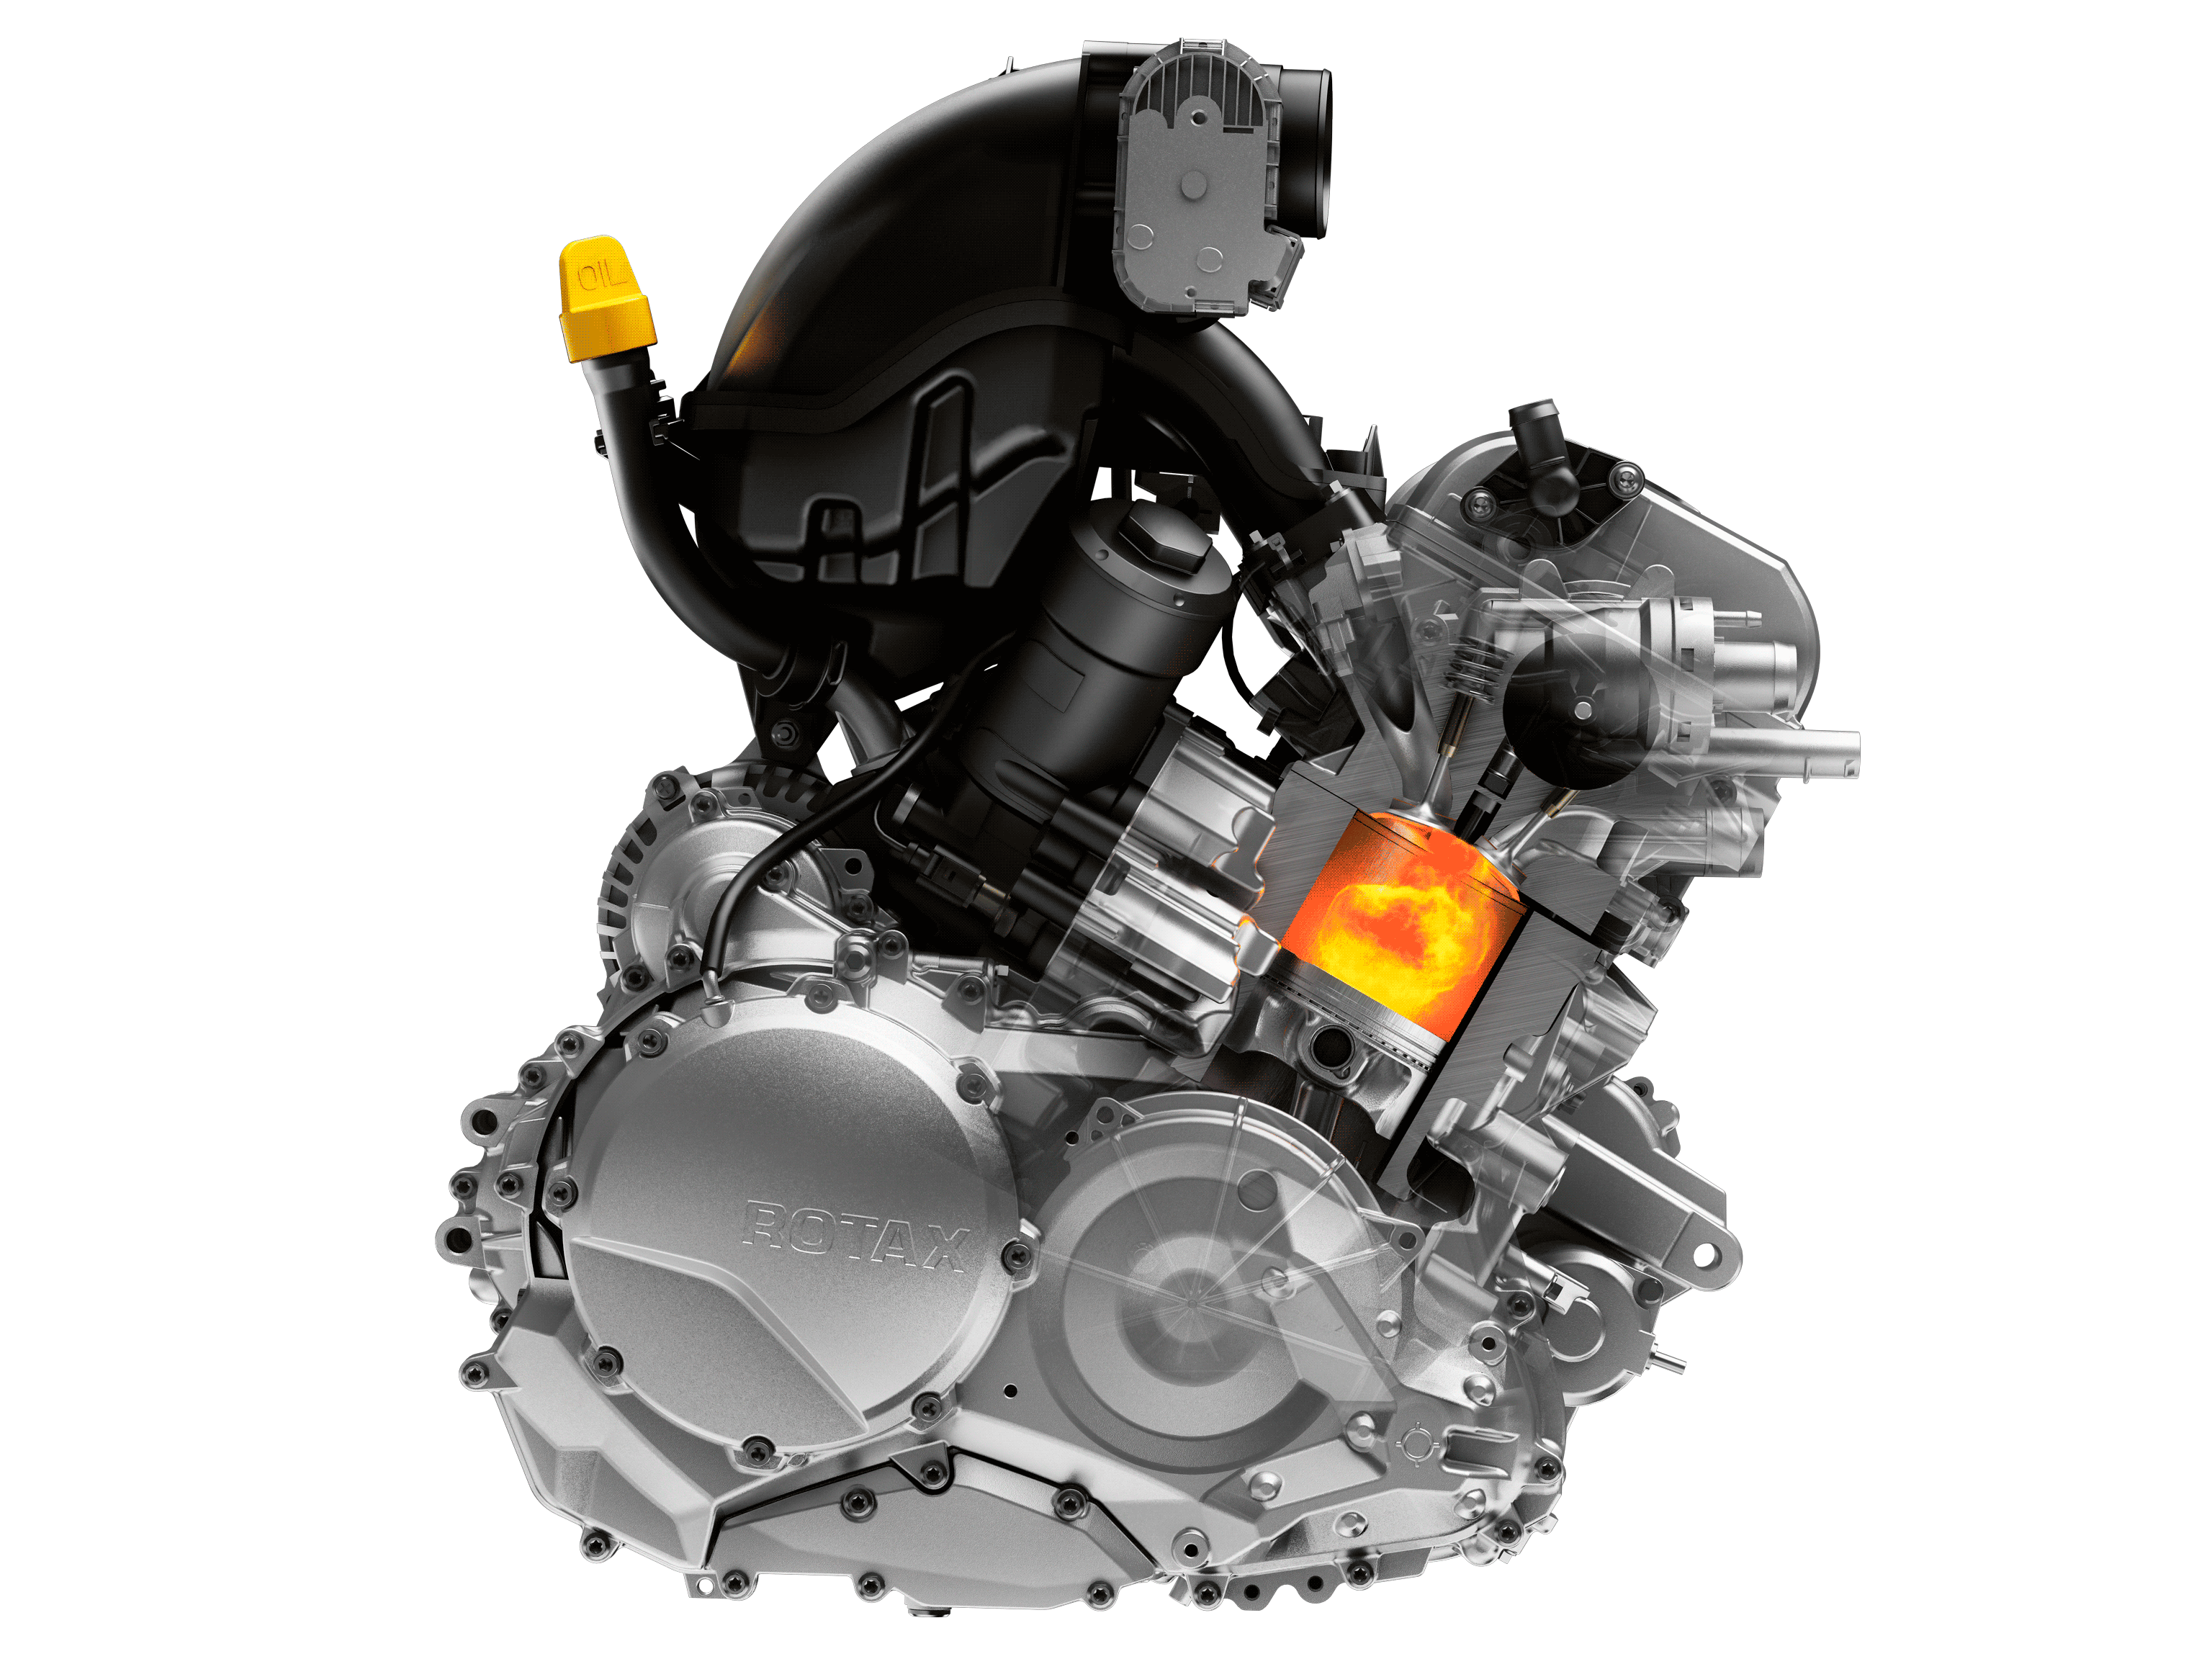 A Can-Am Spyder vehicle engine